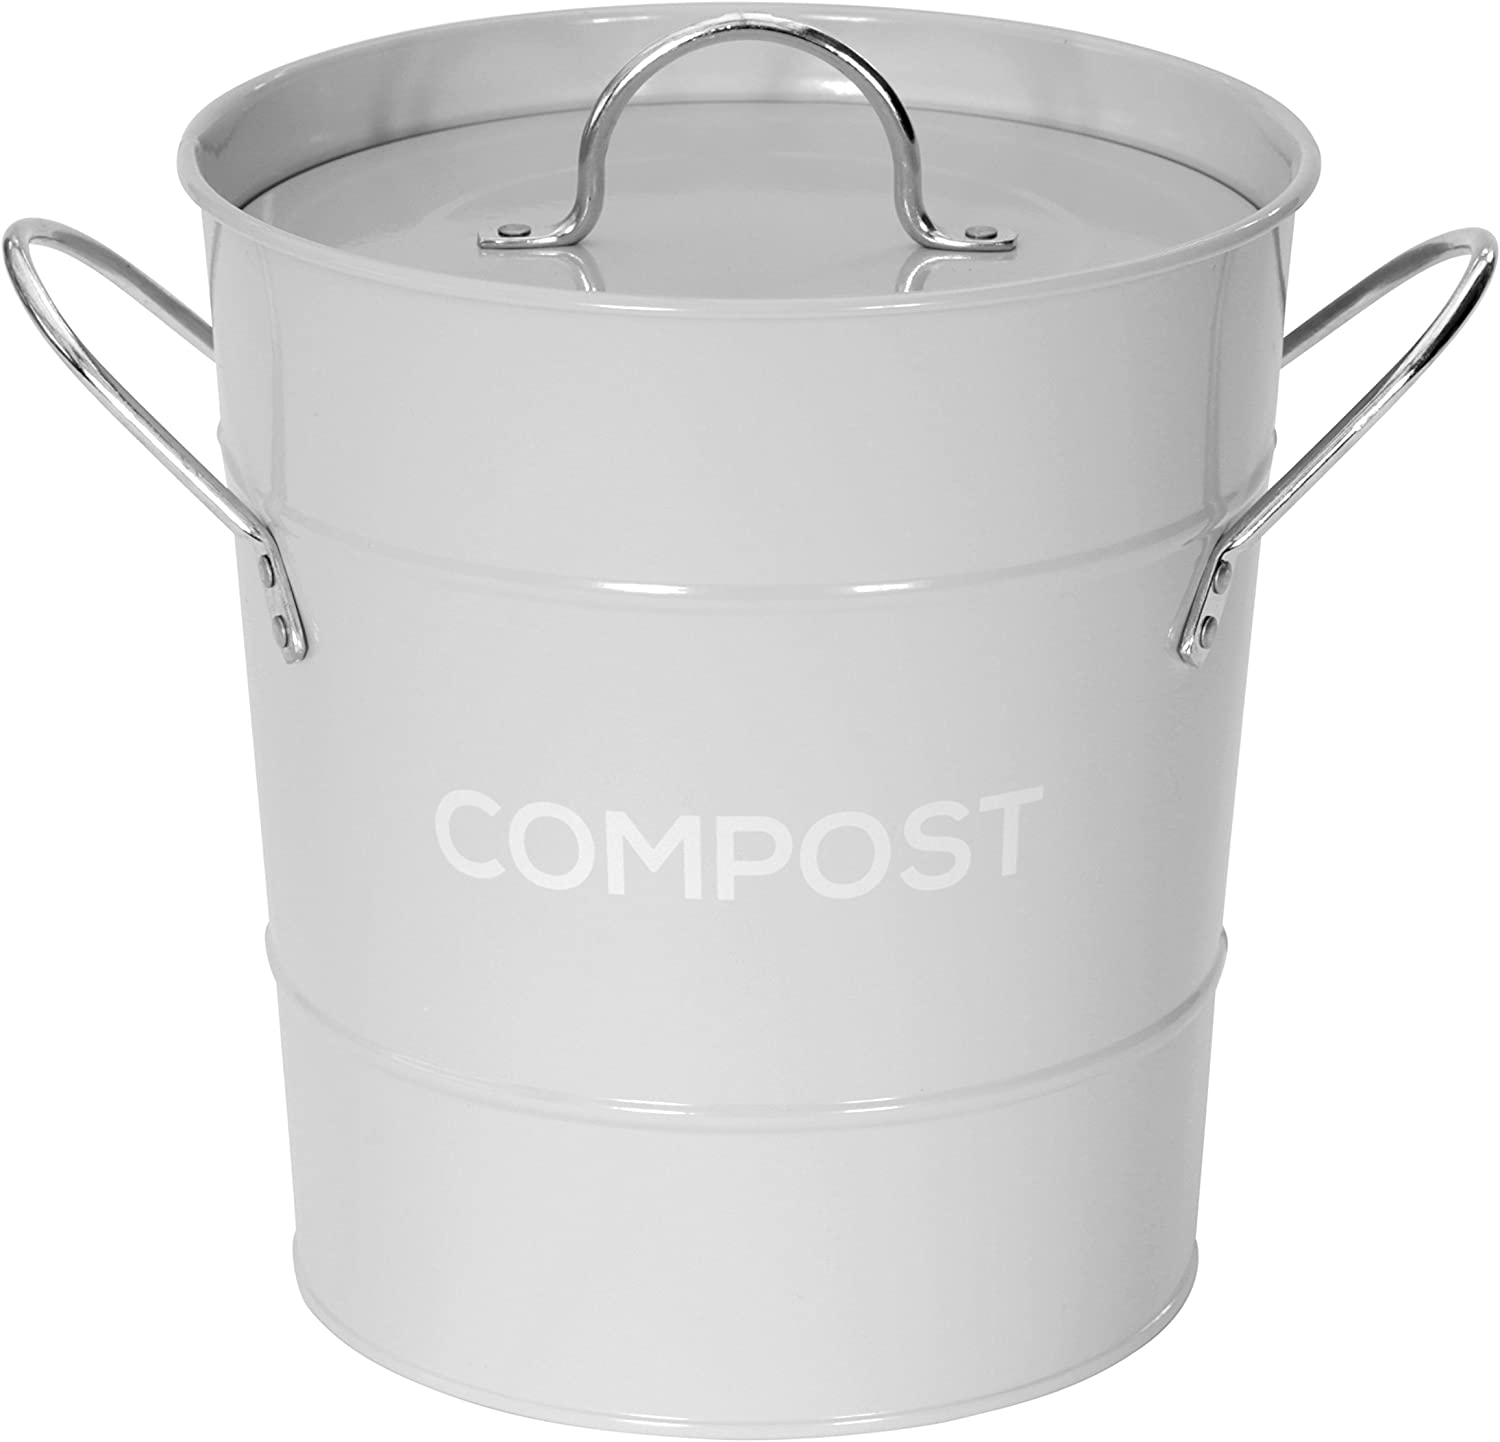 Light Grey Metal Kitchen Compost Caddy Composting Bin For Food Waste Recycling Amazon Co Uk Kitchen Home